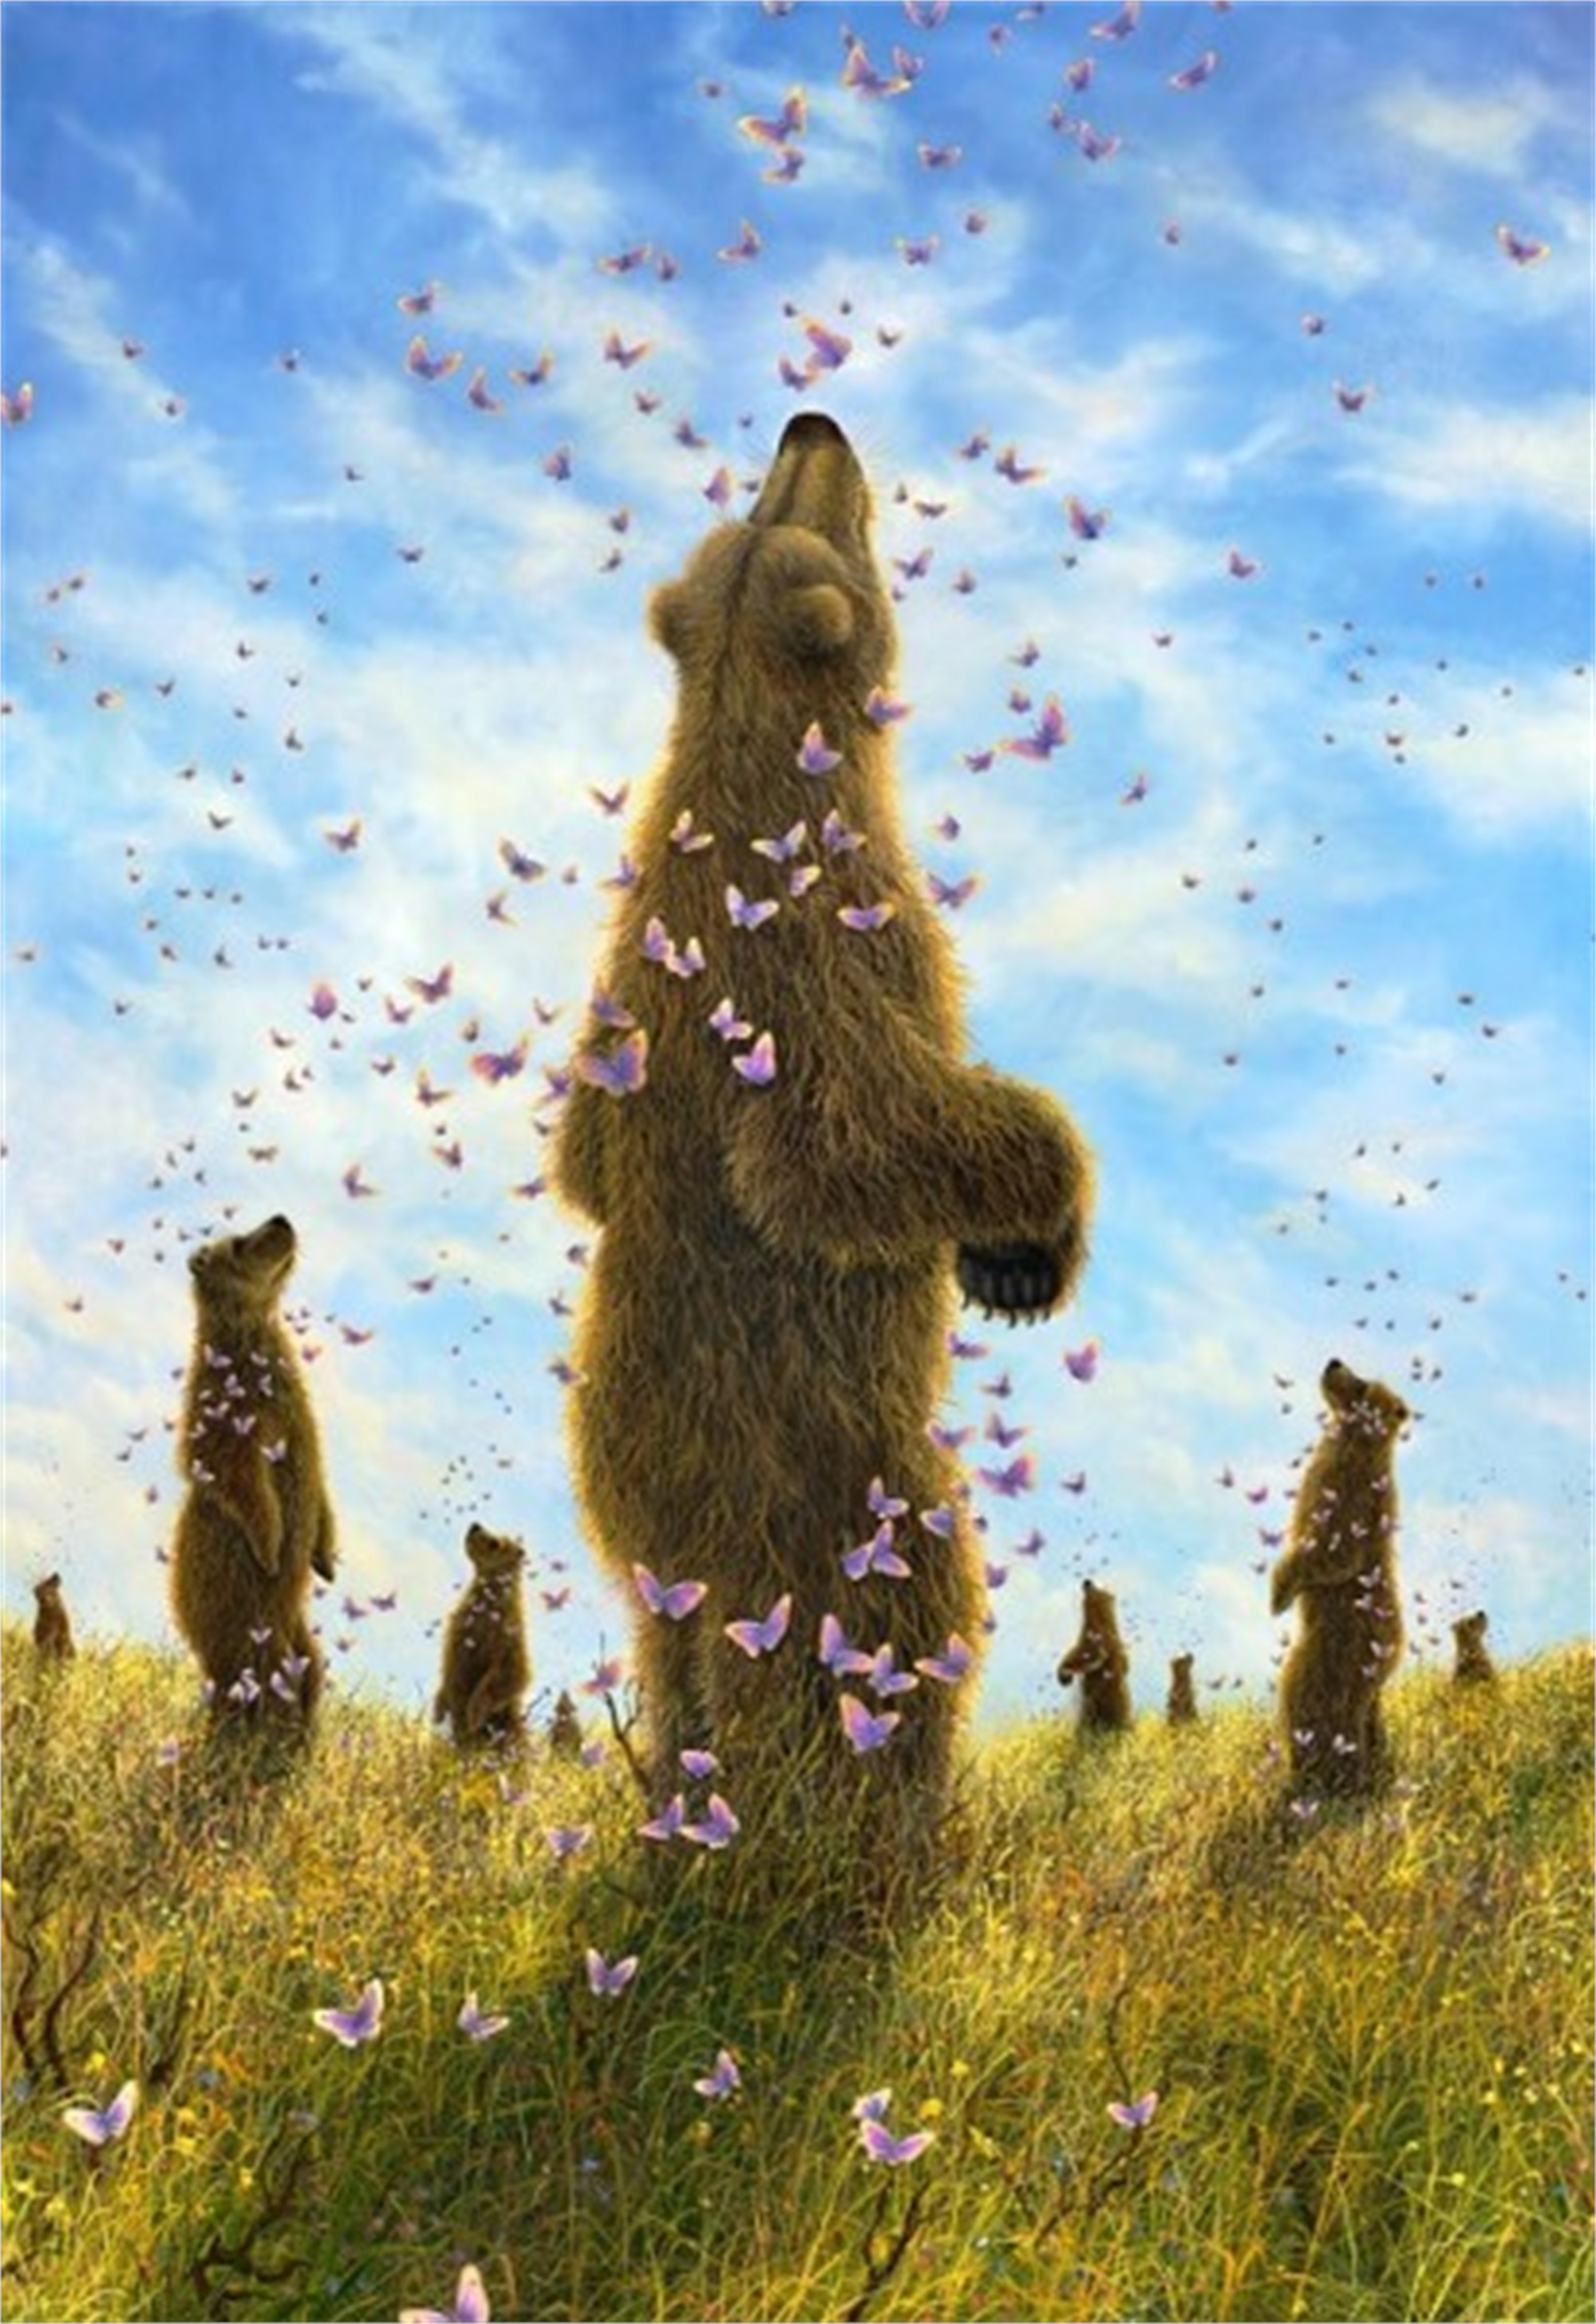 Enchantment, The (Collector Edition) by Robert Bissell